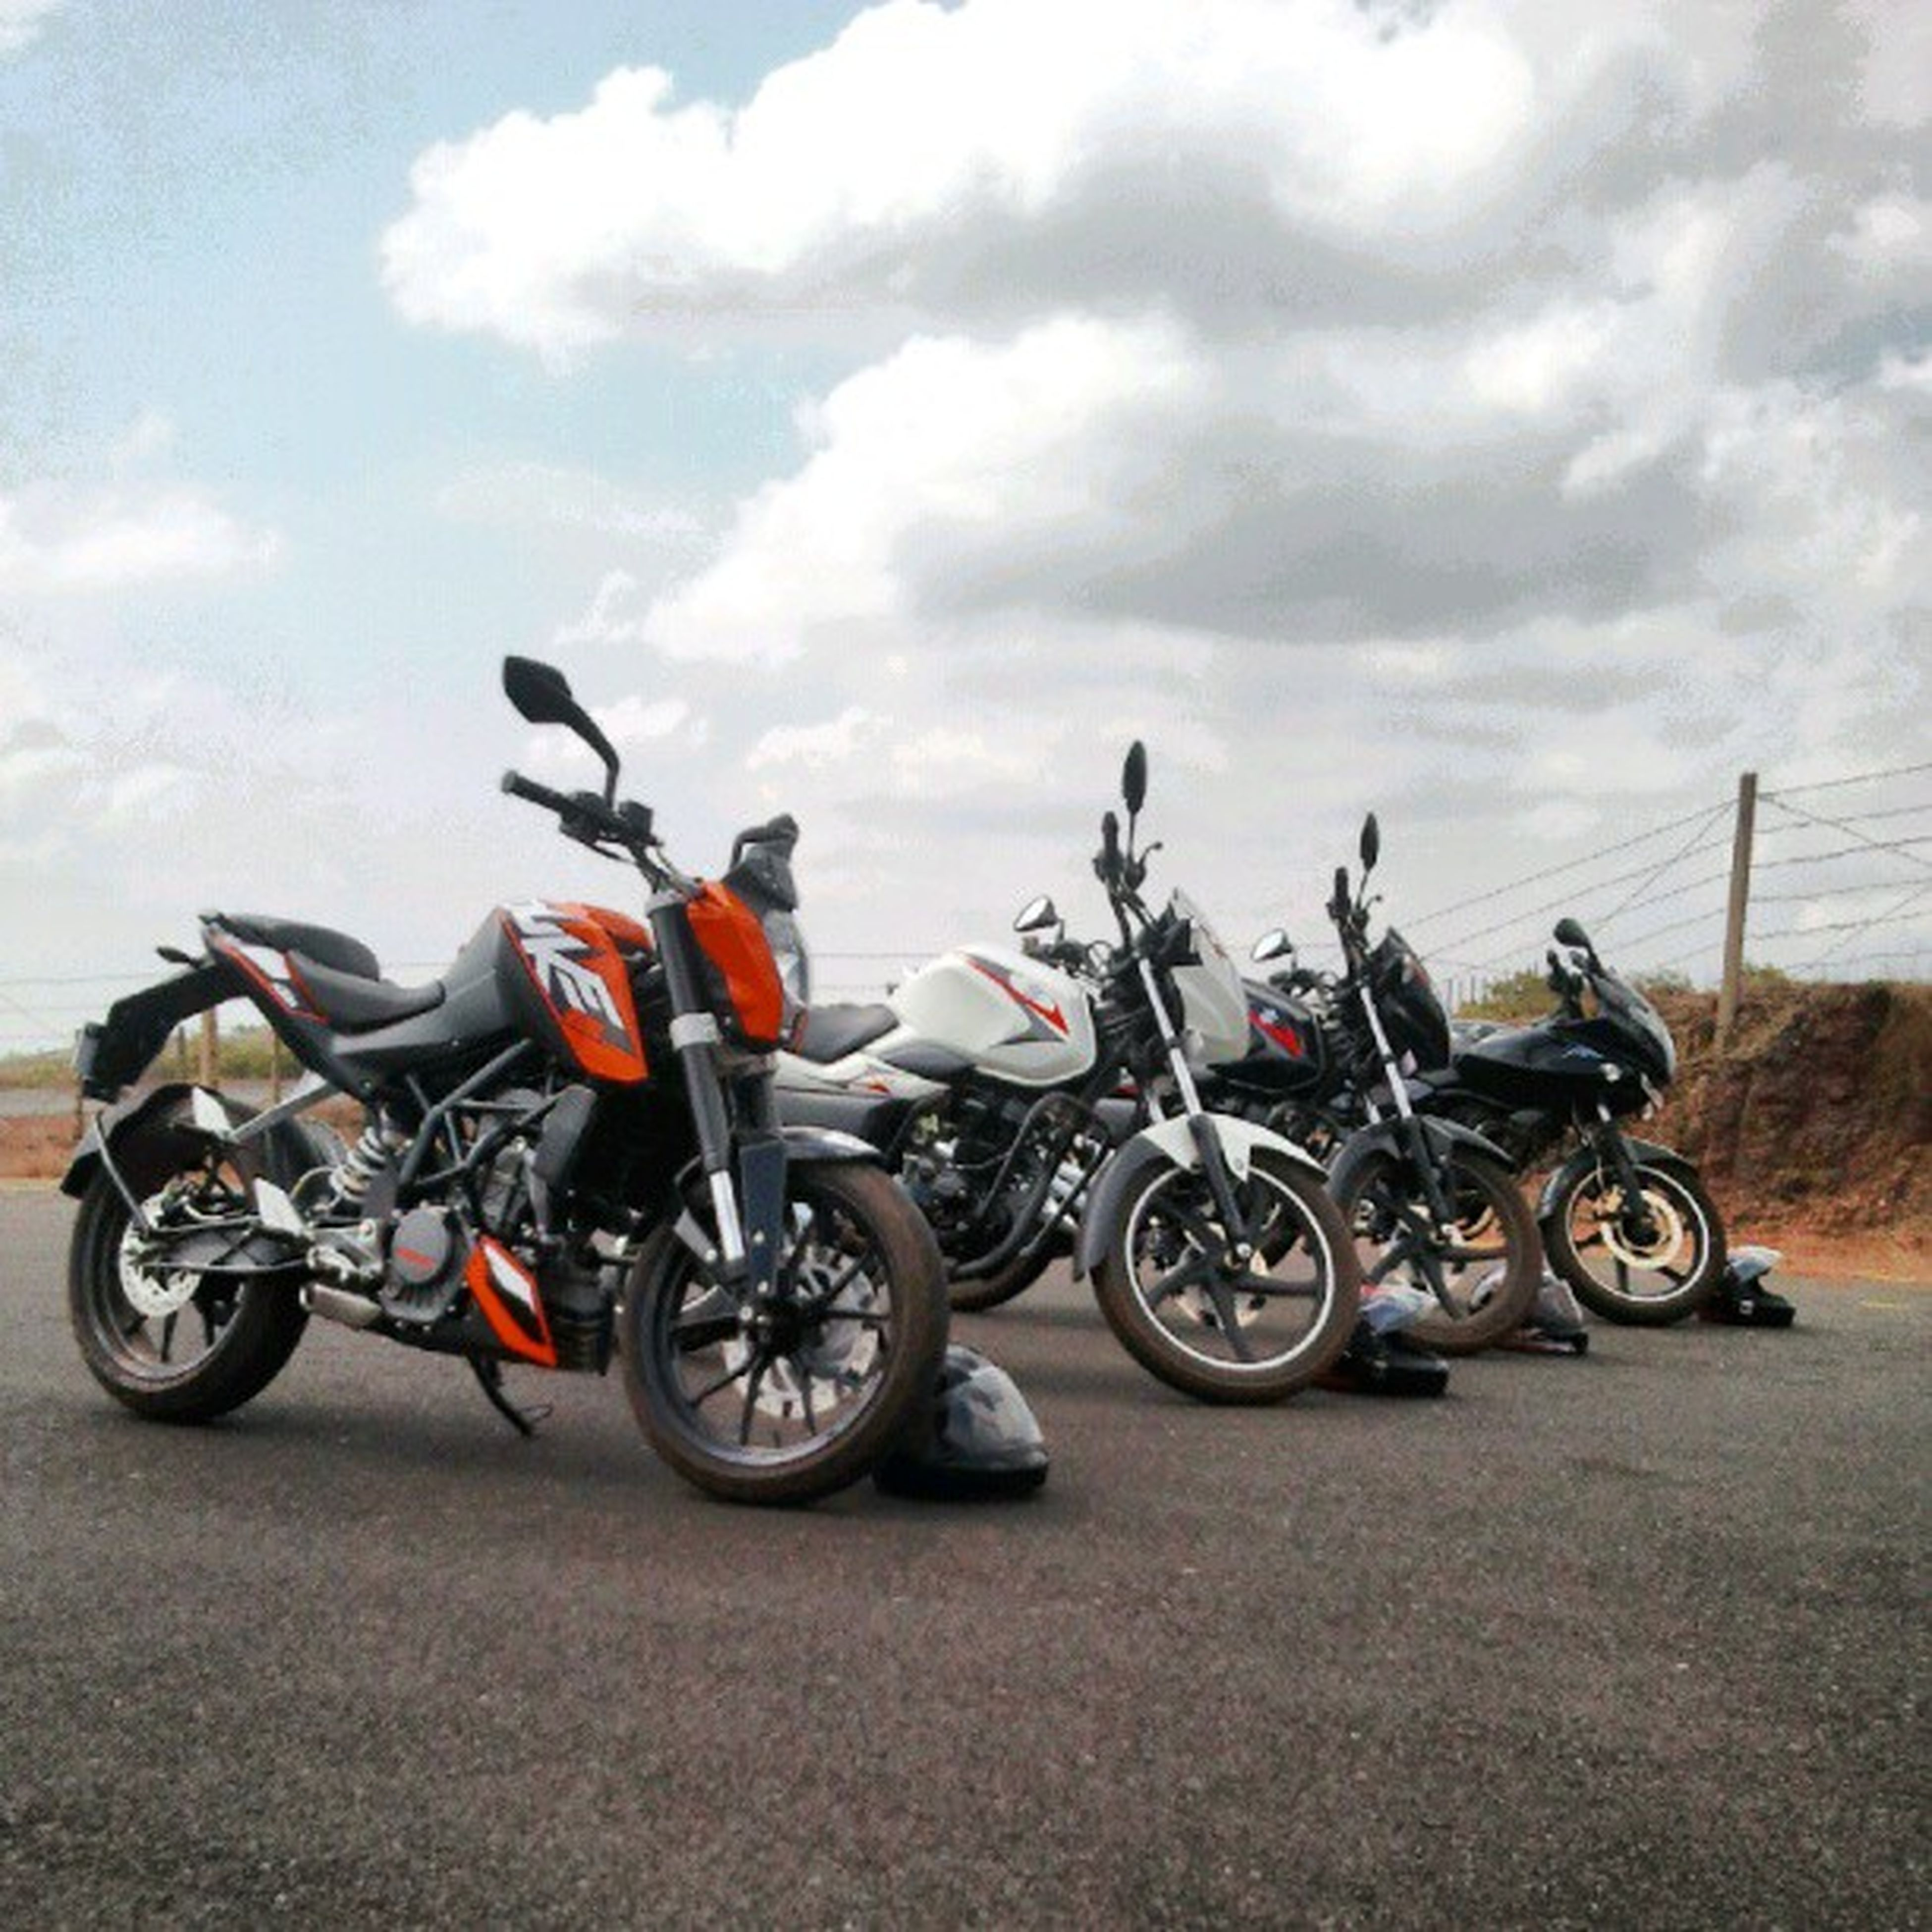 bicycle, transportation, land vehicle, mode of transport, stationary, parked, parking, sky, motorcycle, cloud - sky, travel, day, side view, riding, outdoors, street, car, no people, road, parking lot